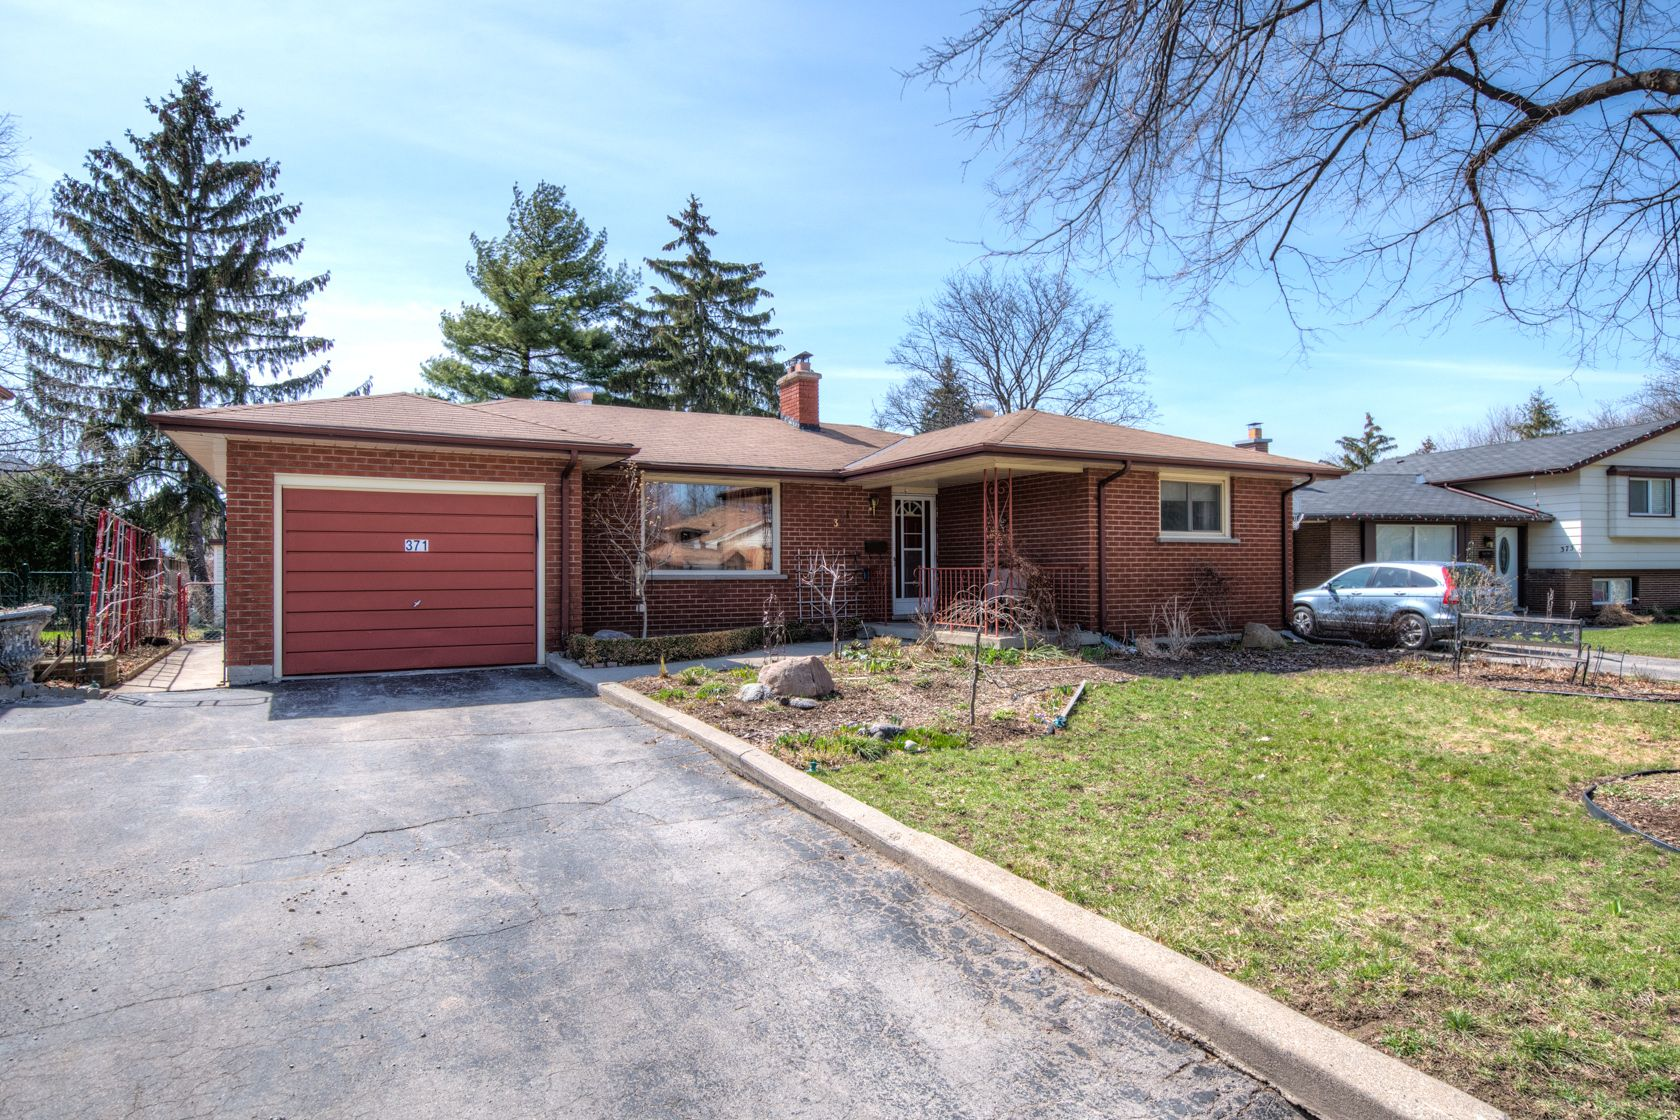 3 Bedroom, 2 Bathroom, Ranch with Garage & GrannySuite in Ridgeview Heights! -   $224,900 - http://www.JeffBroughton.ca/listing/cms/371-fuller-place-london/ -   #RealEstate #ForSale in #London #Ontario by #Realtor